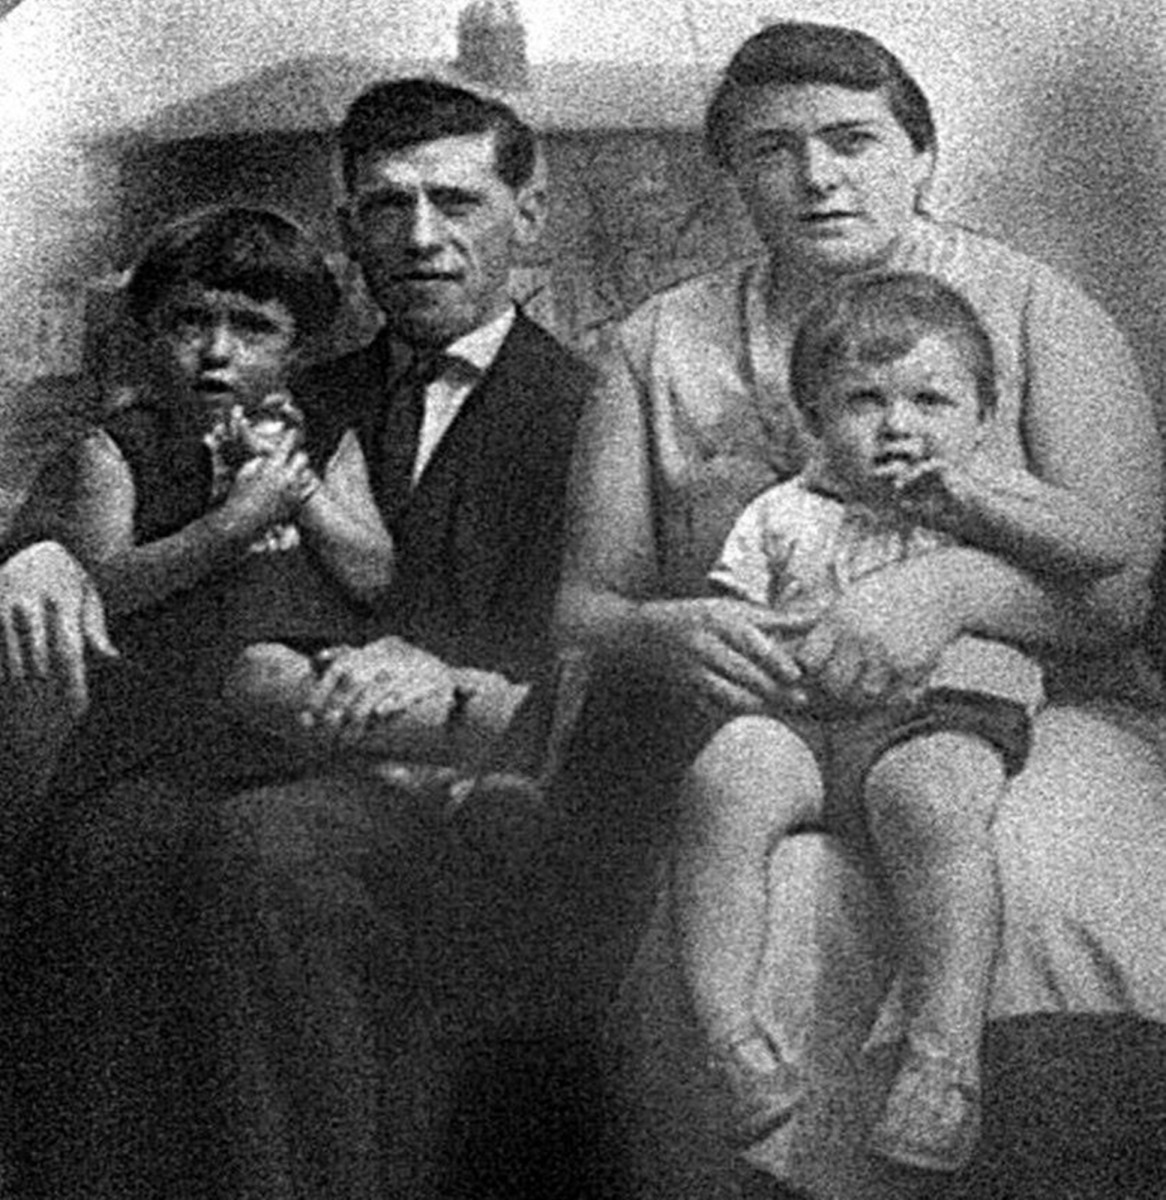 Grandad and grandma, with my mum (on grandad's knee) and her little brother Kenneth, in the early 1930s.